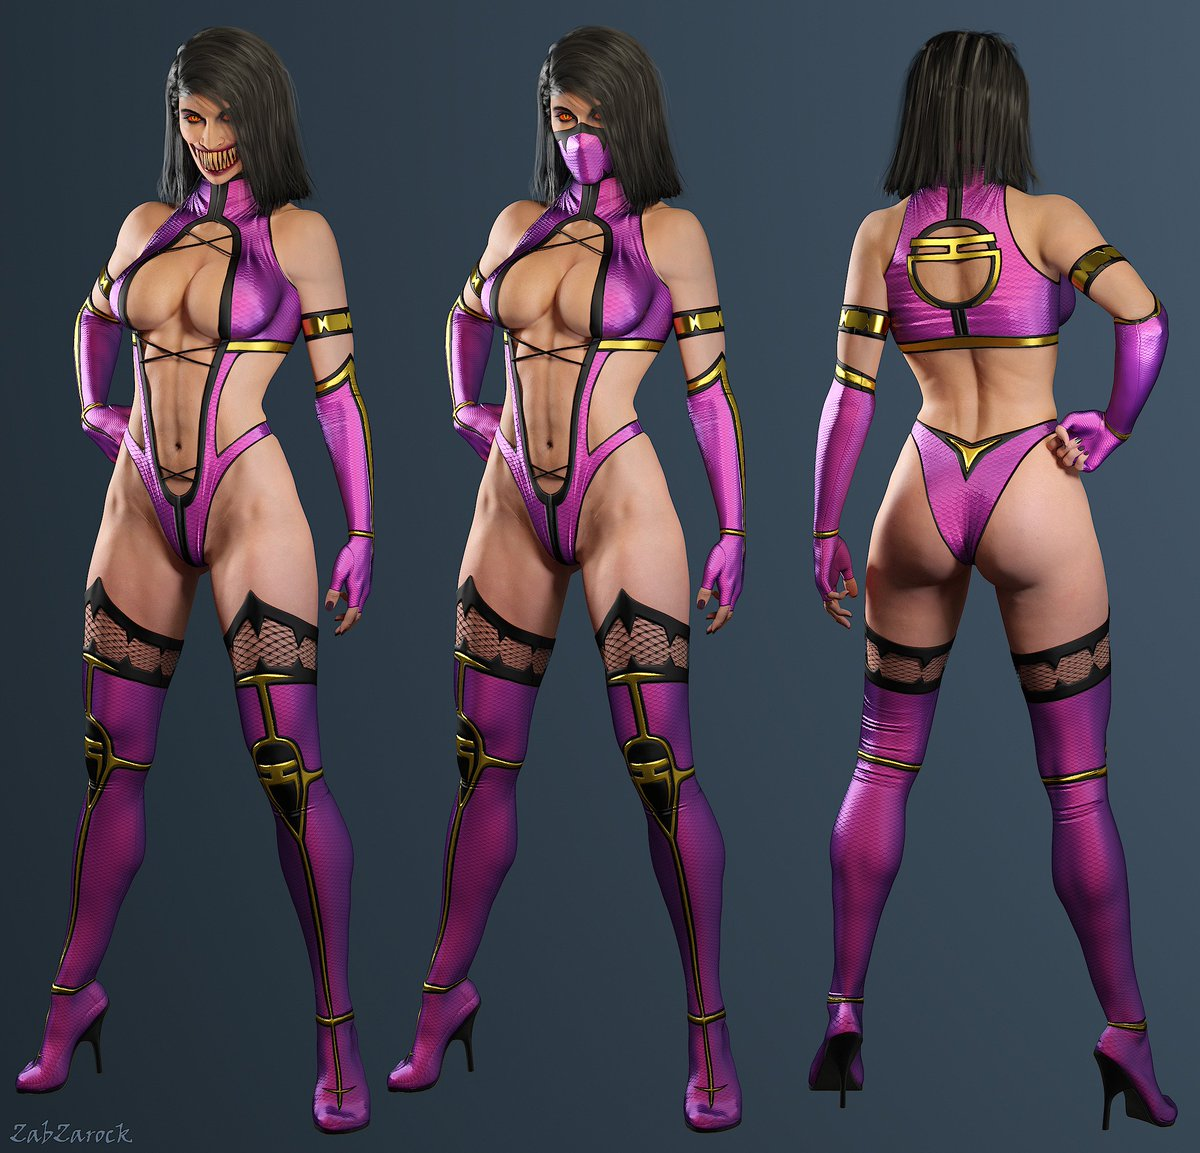 My MK9 Mileena&#39;s 3D model is finally completed ^^ I have also quickly made a custom version of her costume :D HD artworks here -&gt;  http:// fav.me/dcri9bg  &nbsp;   ,  http:// fav.me/dcri9je  &nbsp;    #MortalKombat #mileena #Blender3D <br>http://pic.twitter.com/33zwh1OvAq